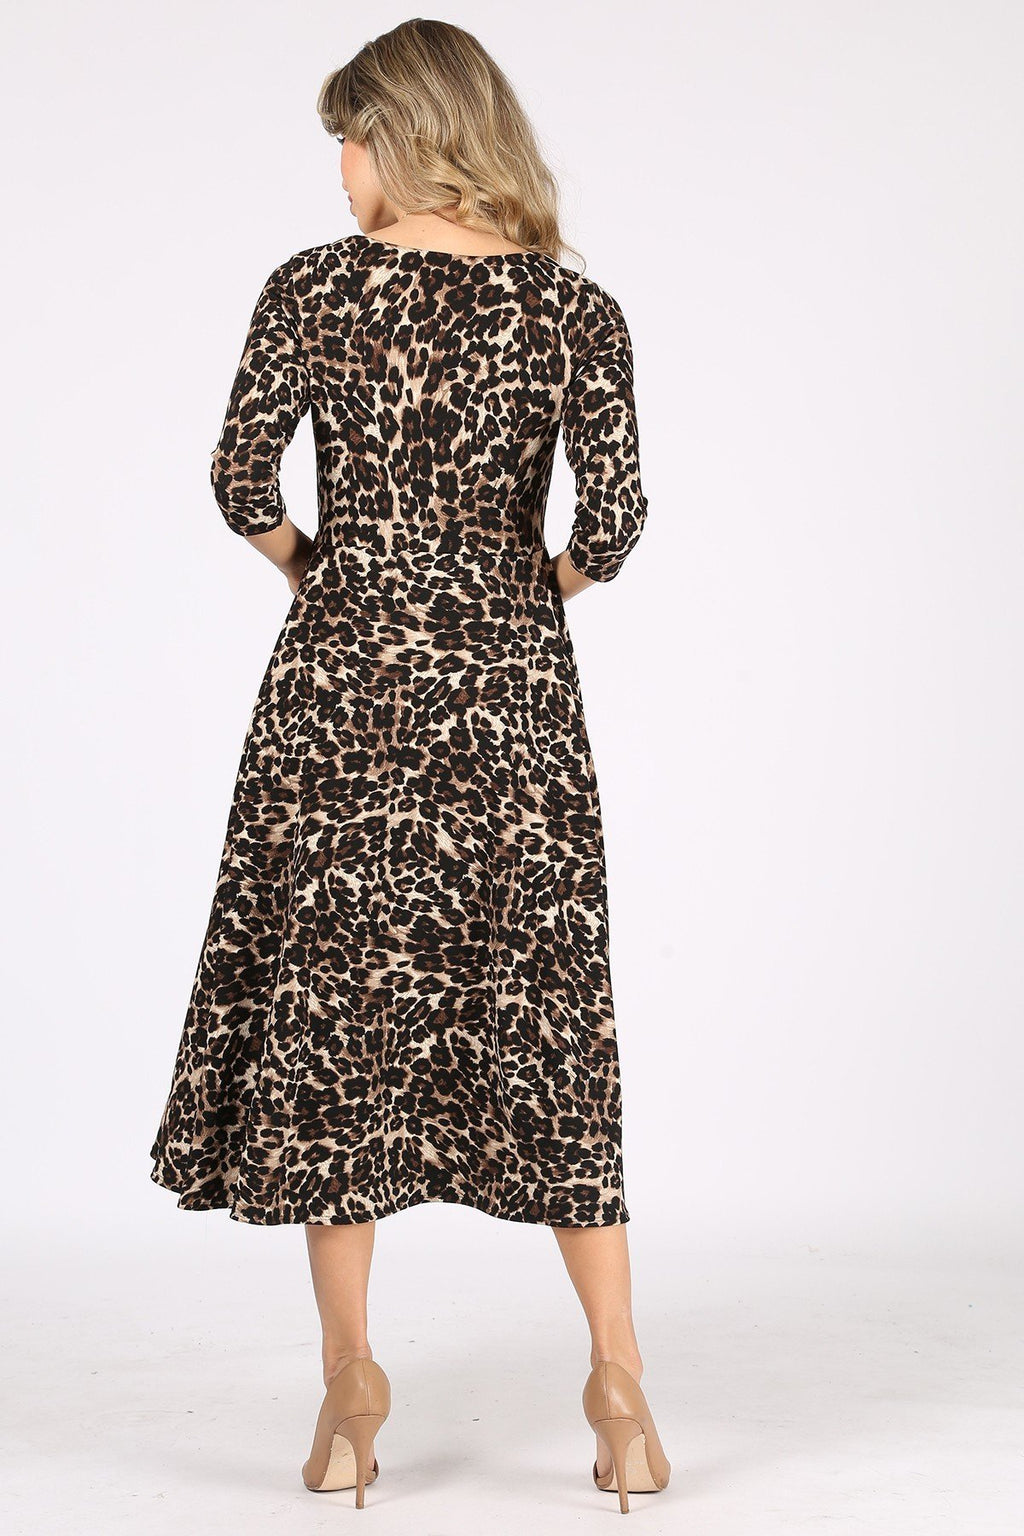 The Adira Dress - Cheetah